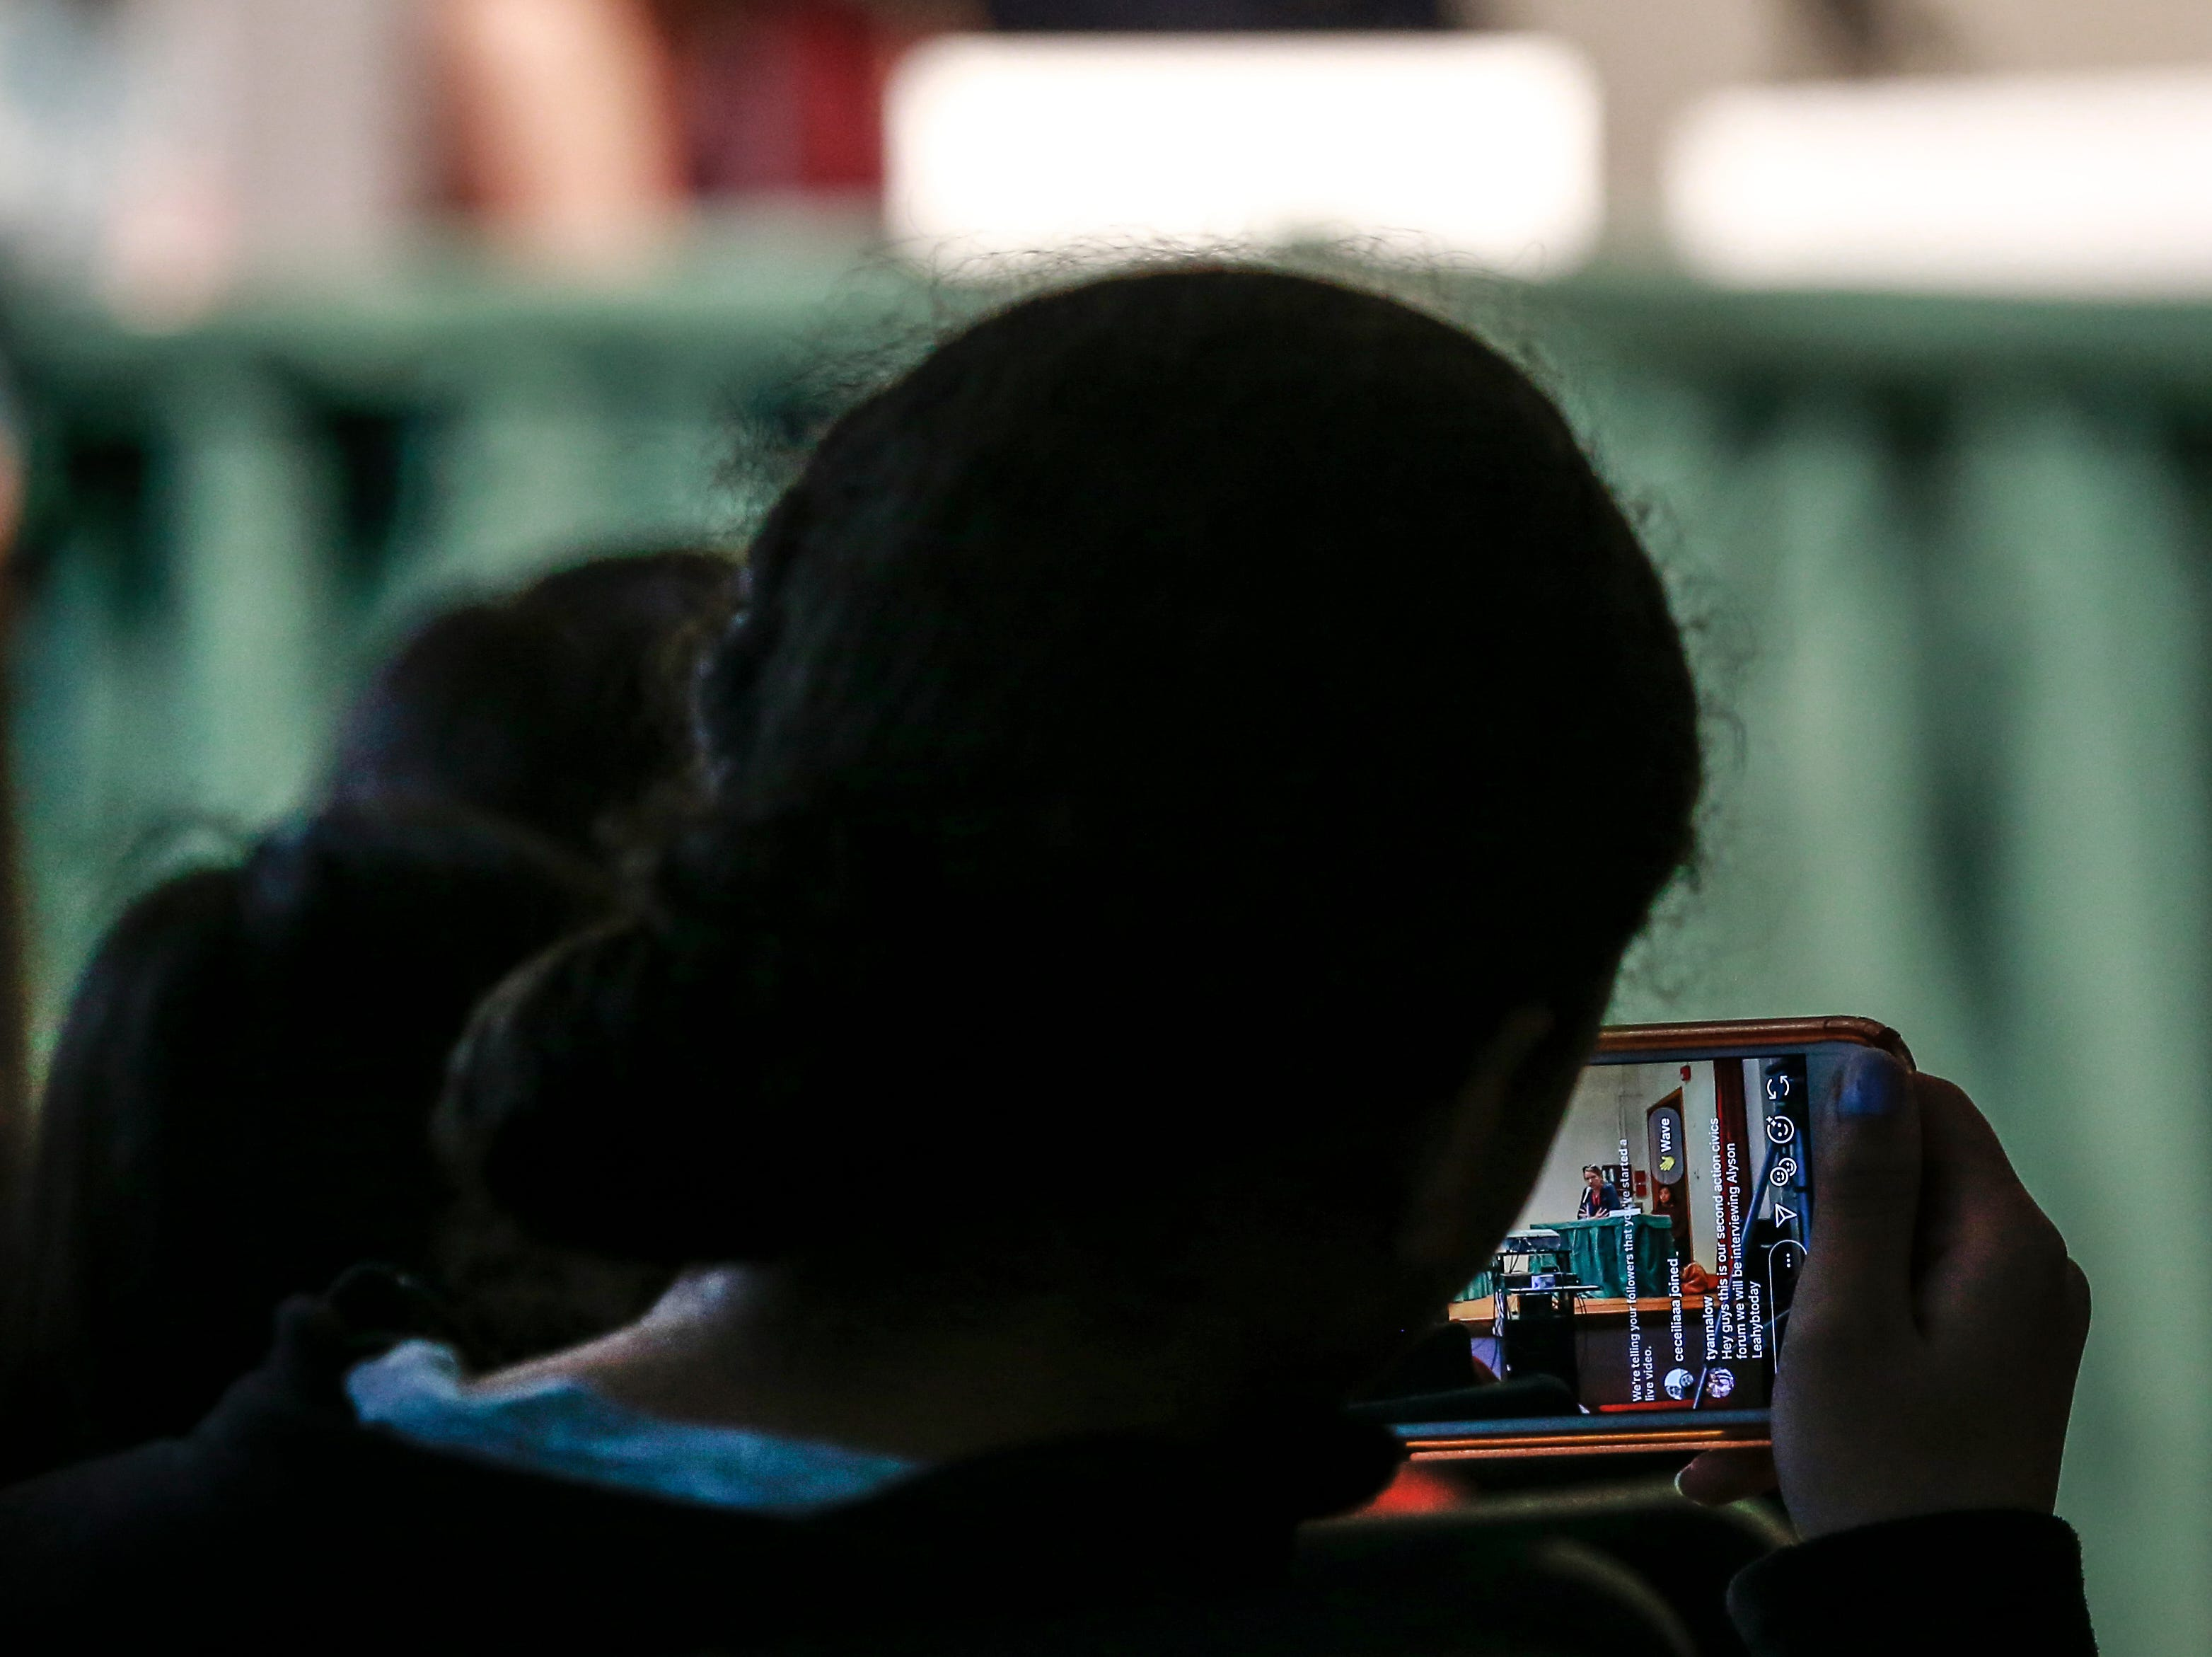 A student Facebook lives during the 9th grade Action Civics Political Forum Wednesday, Oct. 17, 2018, at D.C. Everest Junior High School auditorium in Weston, Wis. T'xer Zhon Kha/USA TODAY NETWORK-Wisconsin